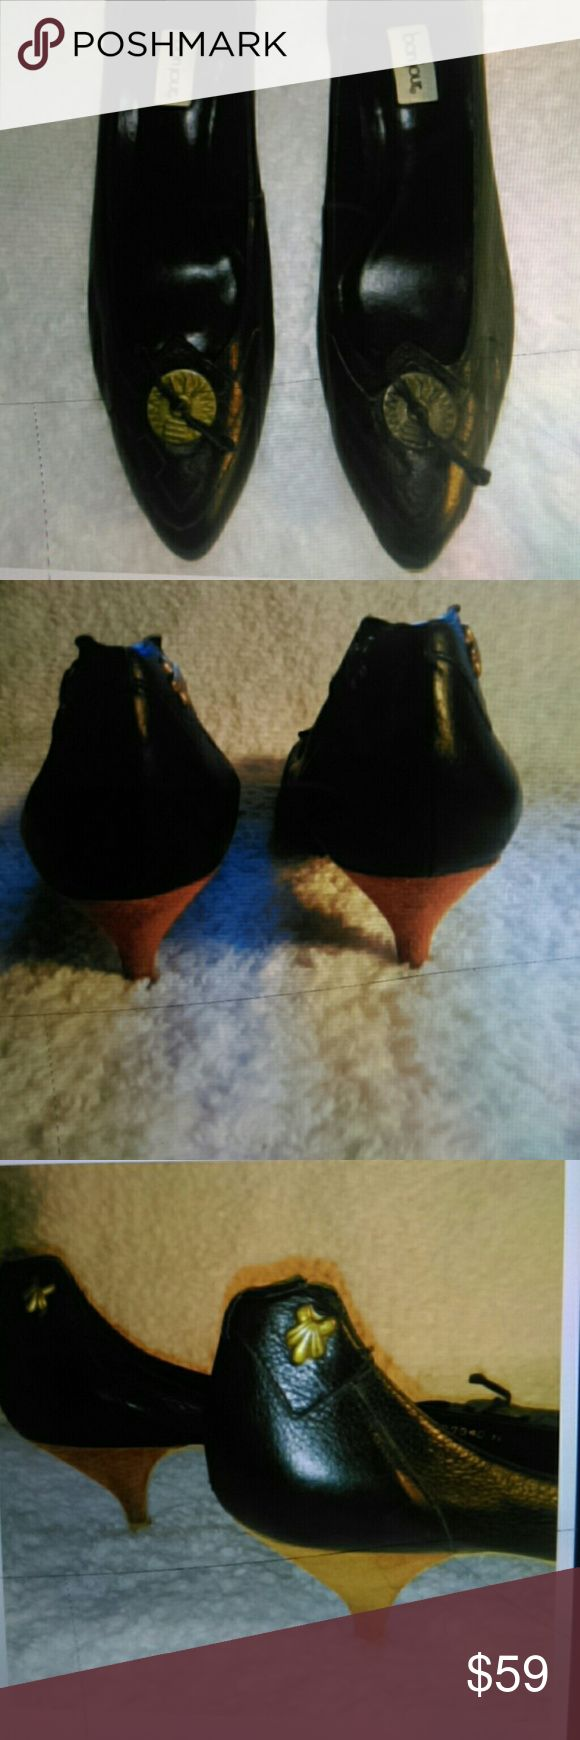 """Bonjour Genuine Black Leather Low 2"""" Low Heel  11 Black Leather low """"kitten"""" heeled pumps by Bonjour. Size 11 Medium Width. (These would not be for wide width feet.) The conch deco on the front of each toe lend a bit of a cowboy/western vibe.  This gives you a feminine alternative to traditional cowboy boots.  Look amazing with jeans, capris, shorts/daisy dukes and cute with skirts & dresses too  Worn a couple of times and have been carefully stored in the closet in a shoebox. Bonjour Shoes…"""